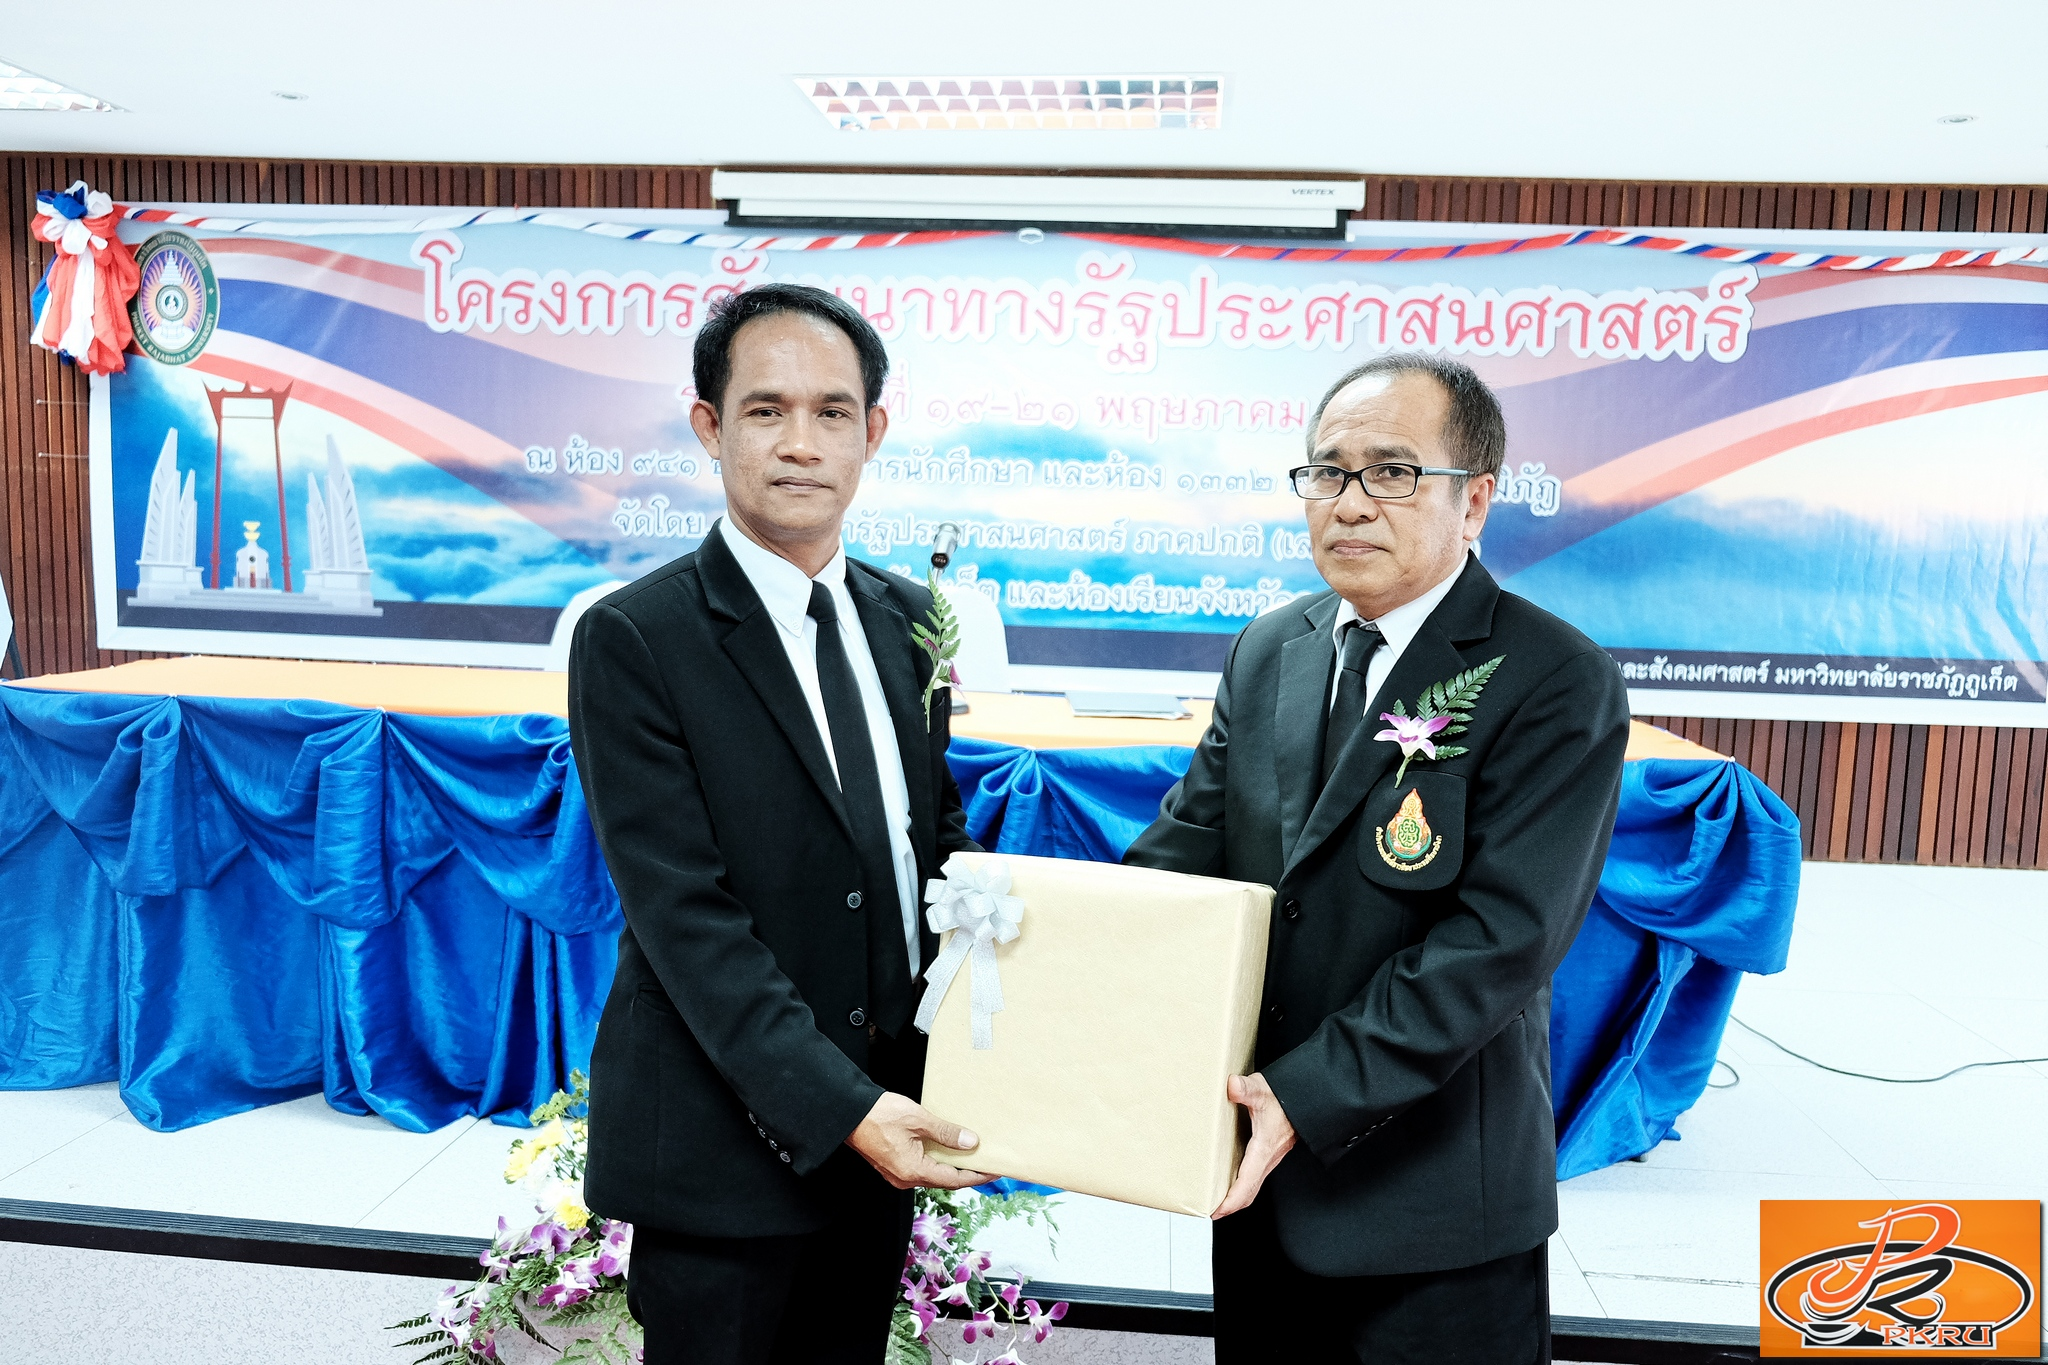 phuket public administration program may 2017 3